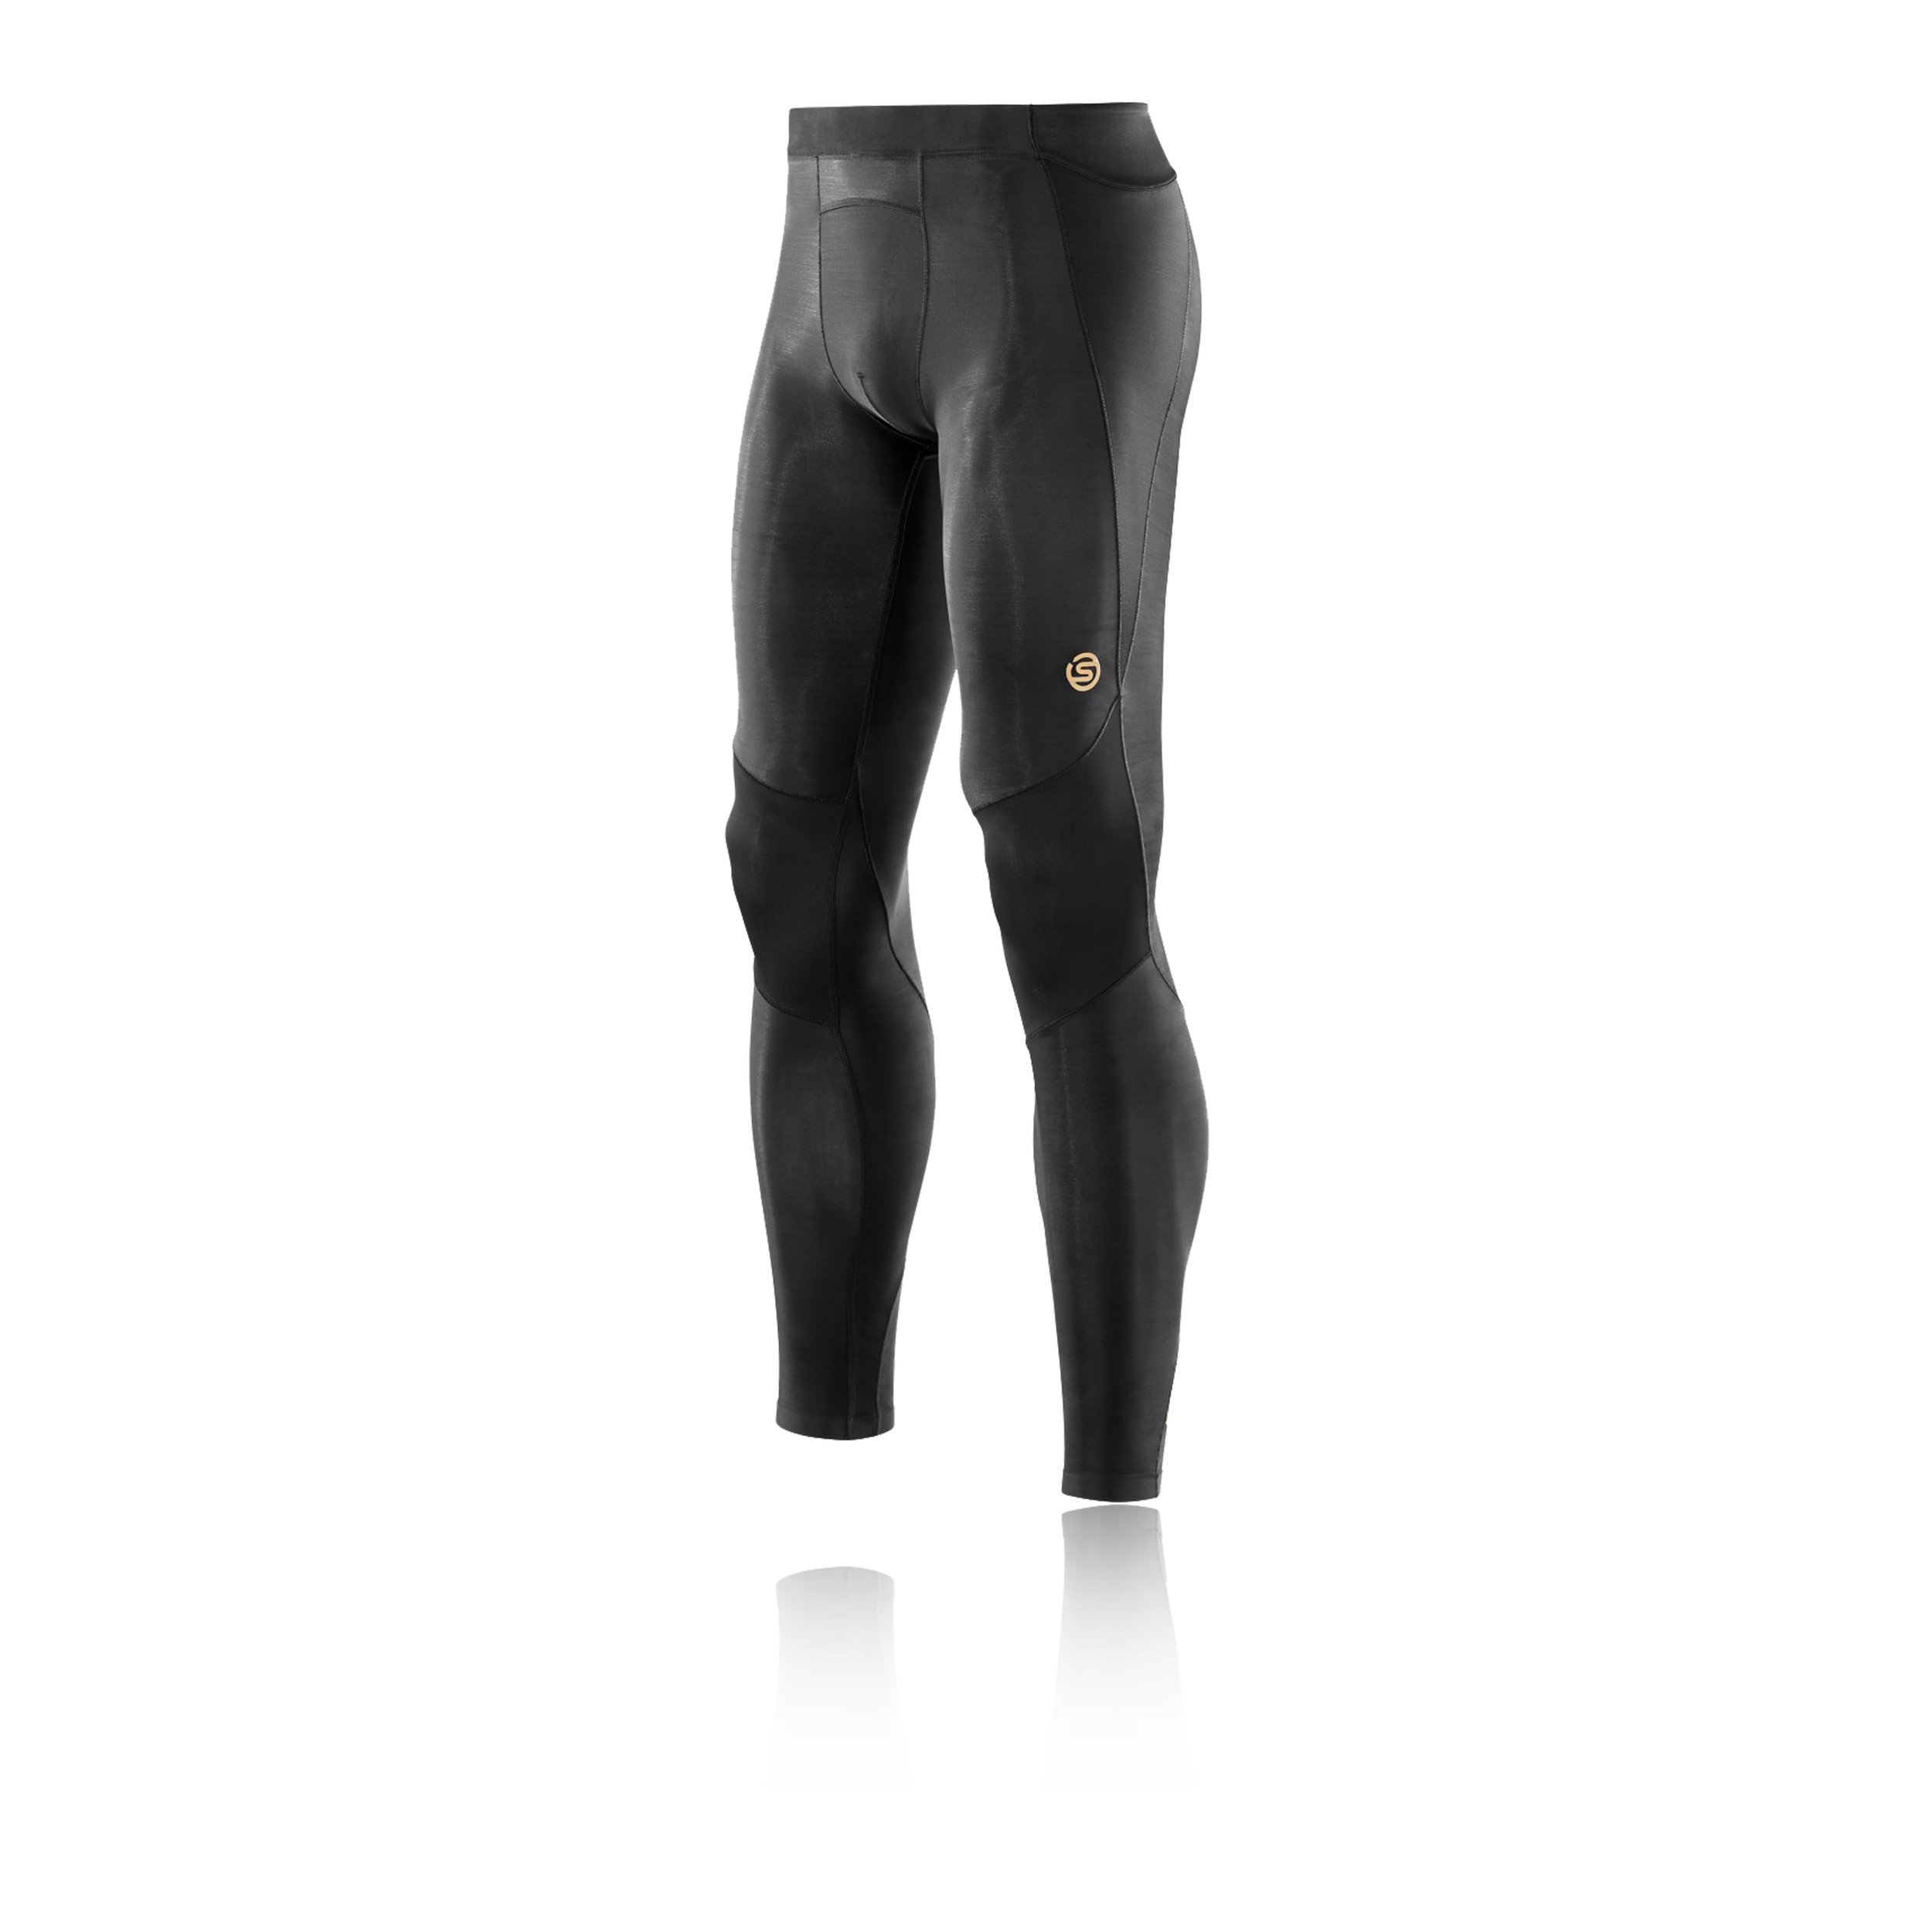 Skins Men's A400 Compression Long Tights, Black, Small